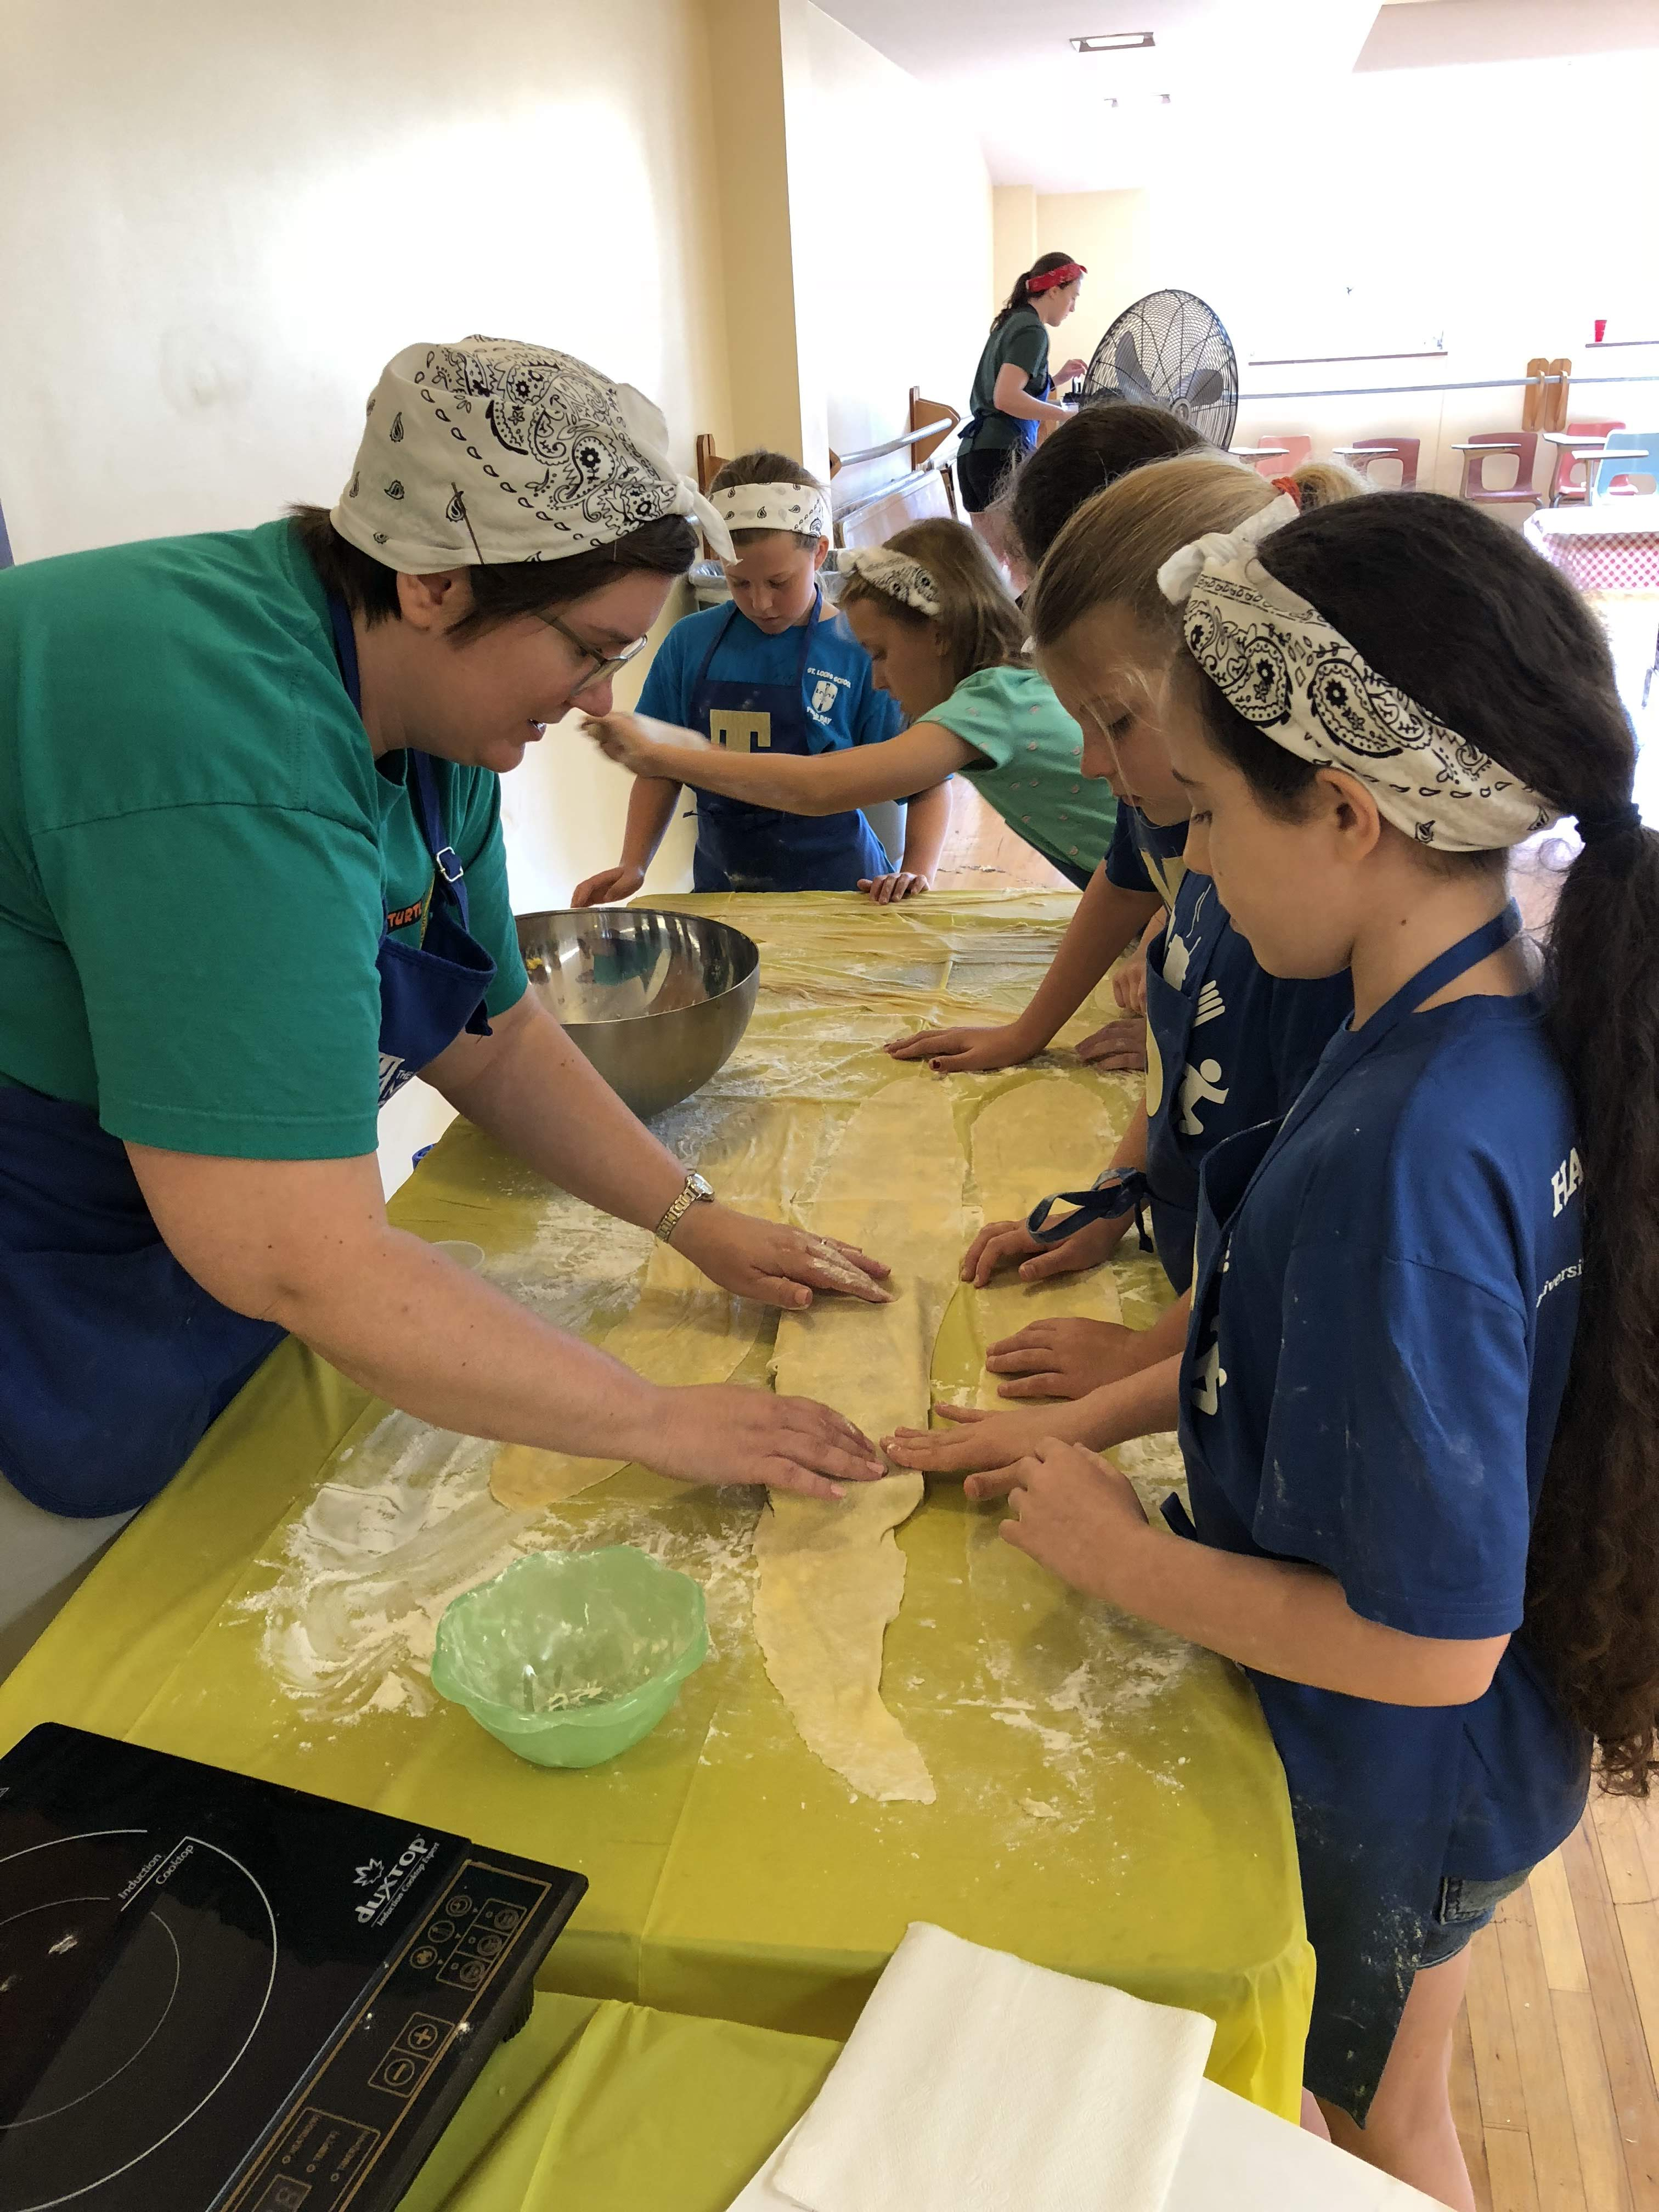 Student helps campers